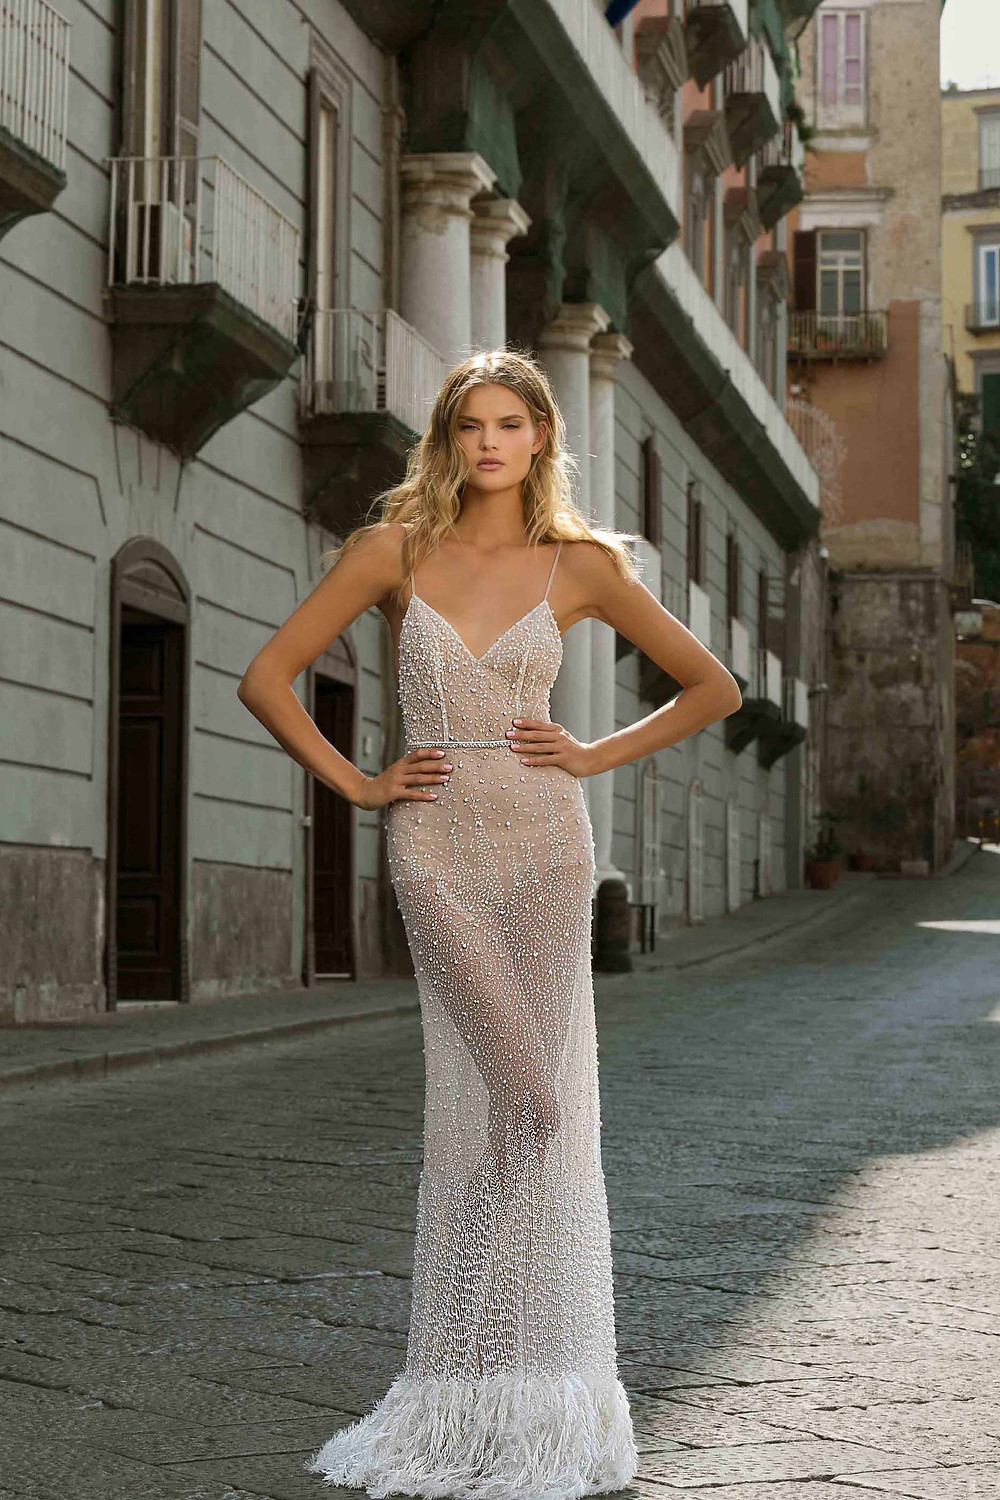 A Berta 2020 sparkly sheath wedding dress, with thin straps, feathers and crystals